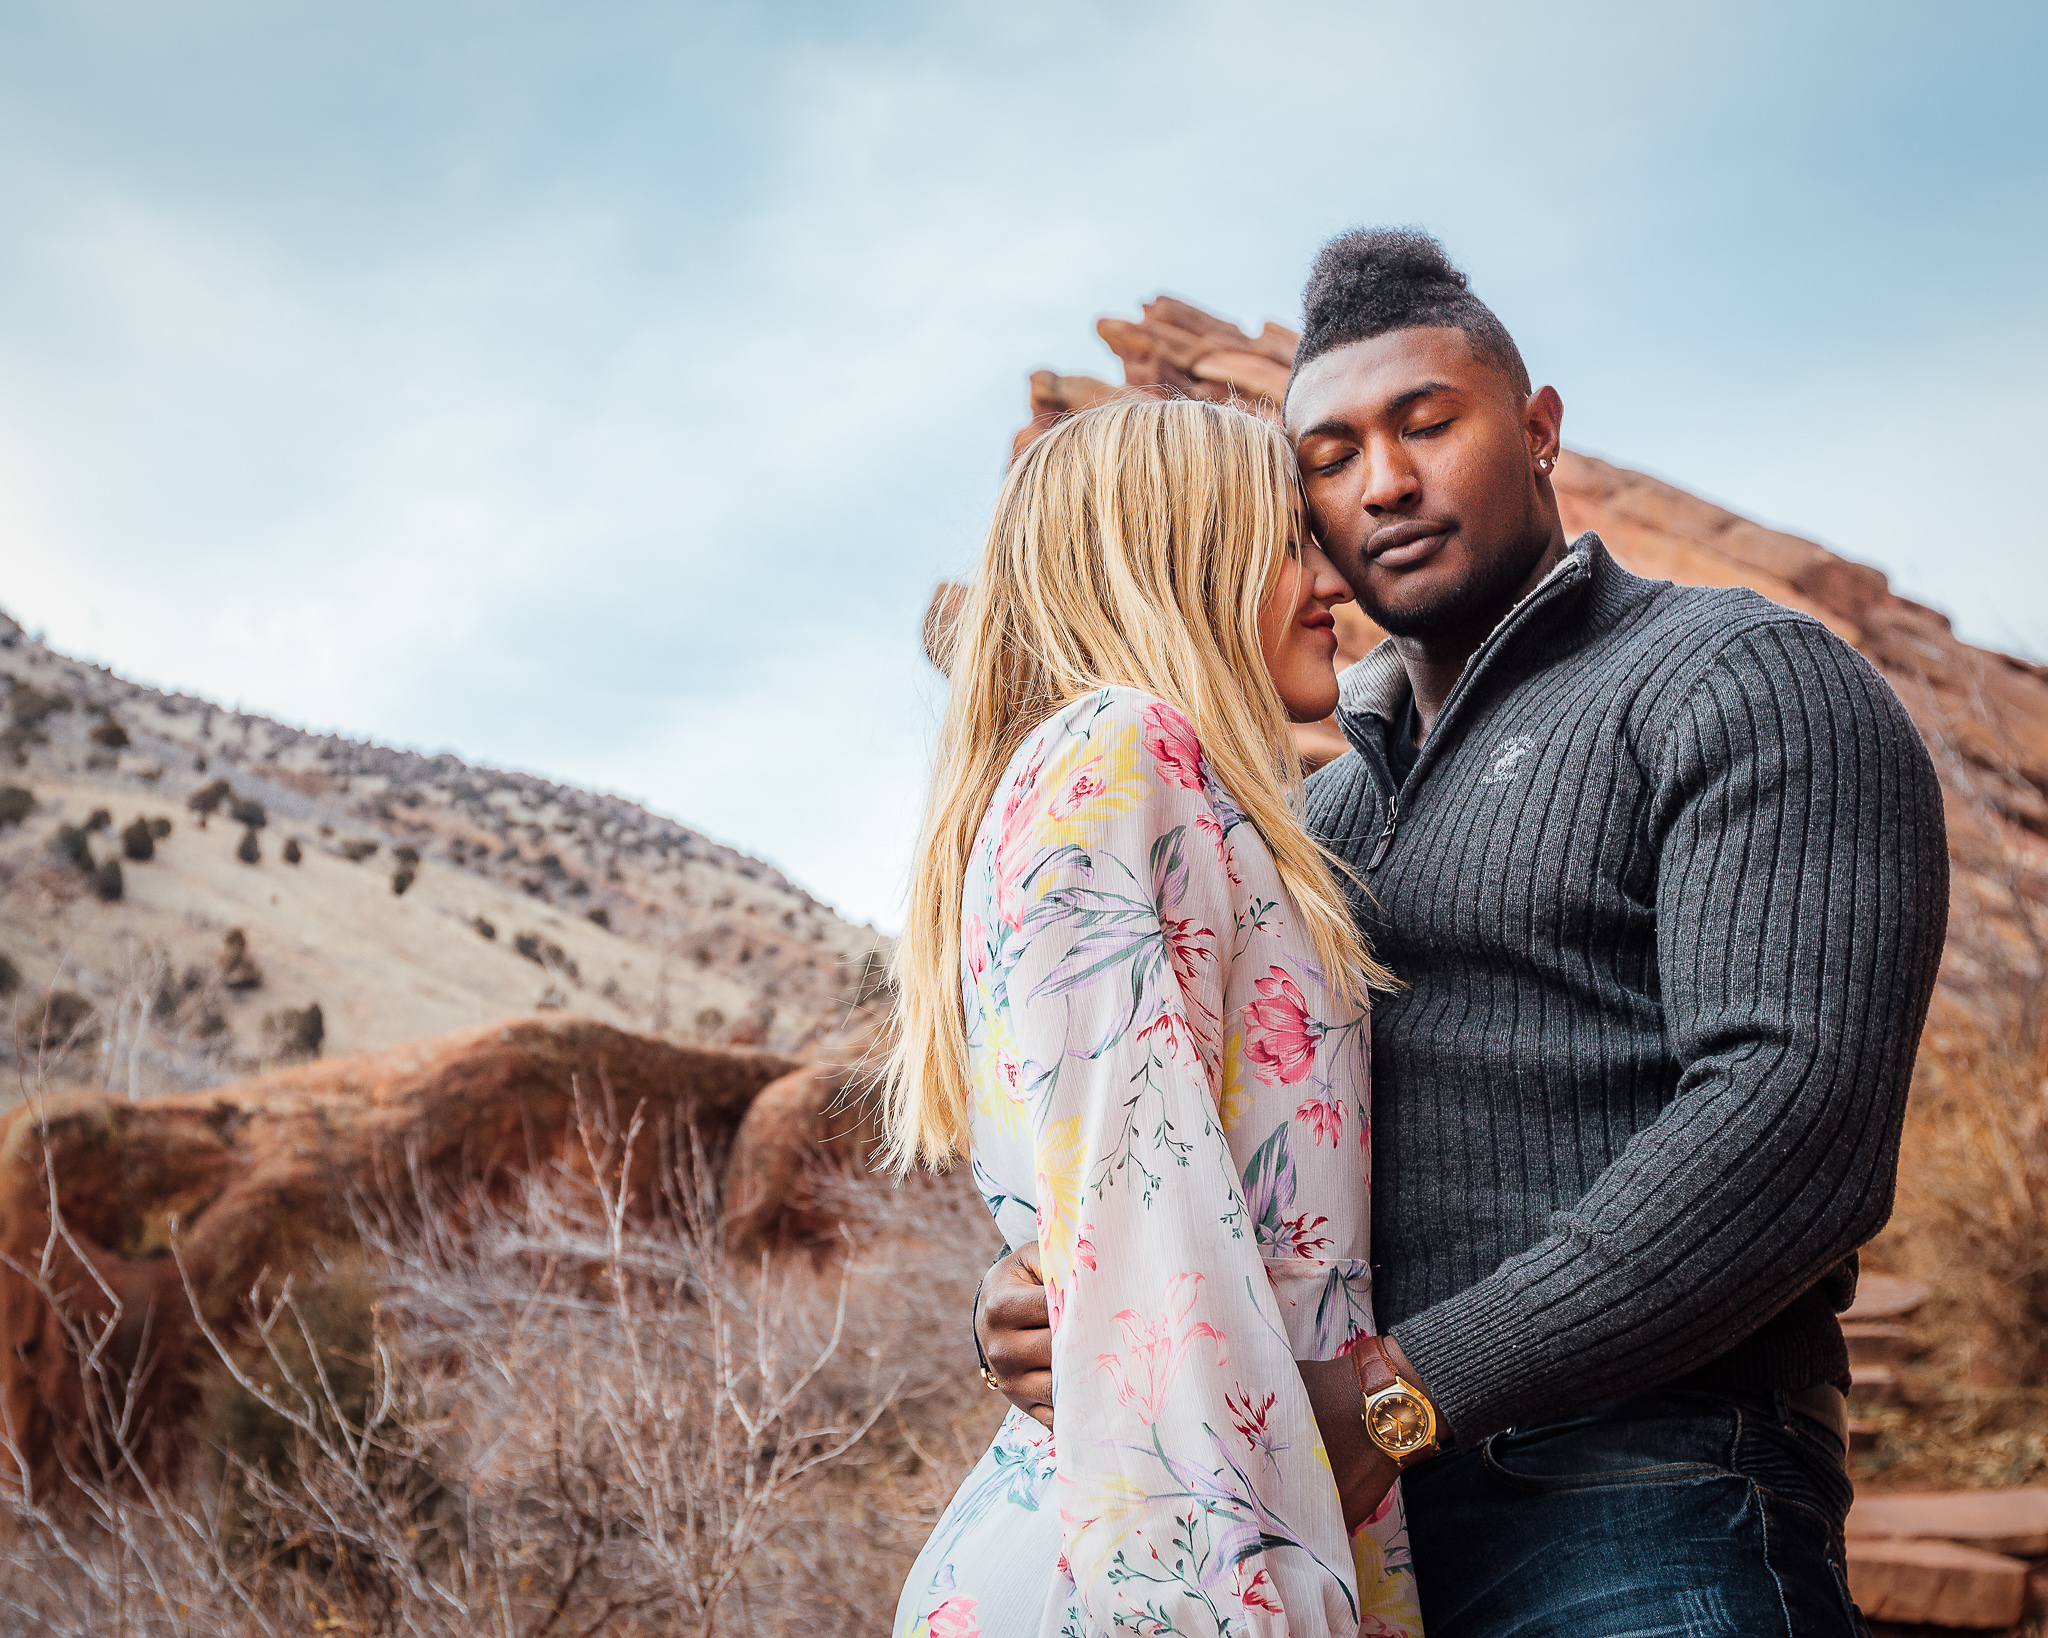 Red Rocks Engagement - Dustin took engagement photos for my fiance and I, and was awesome to work with! He was flexible in scheduling the shoot so that we could get good light at a time that worked for all of us. He was fun to work with and had taken the time to pick out good spots at our location to shoot. He got our photos back to us very quickly and the edits were absolutely beautiful! 10/10 reccommend.-Elizabeth (Denver, CO)